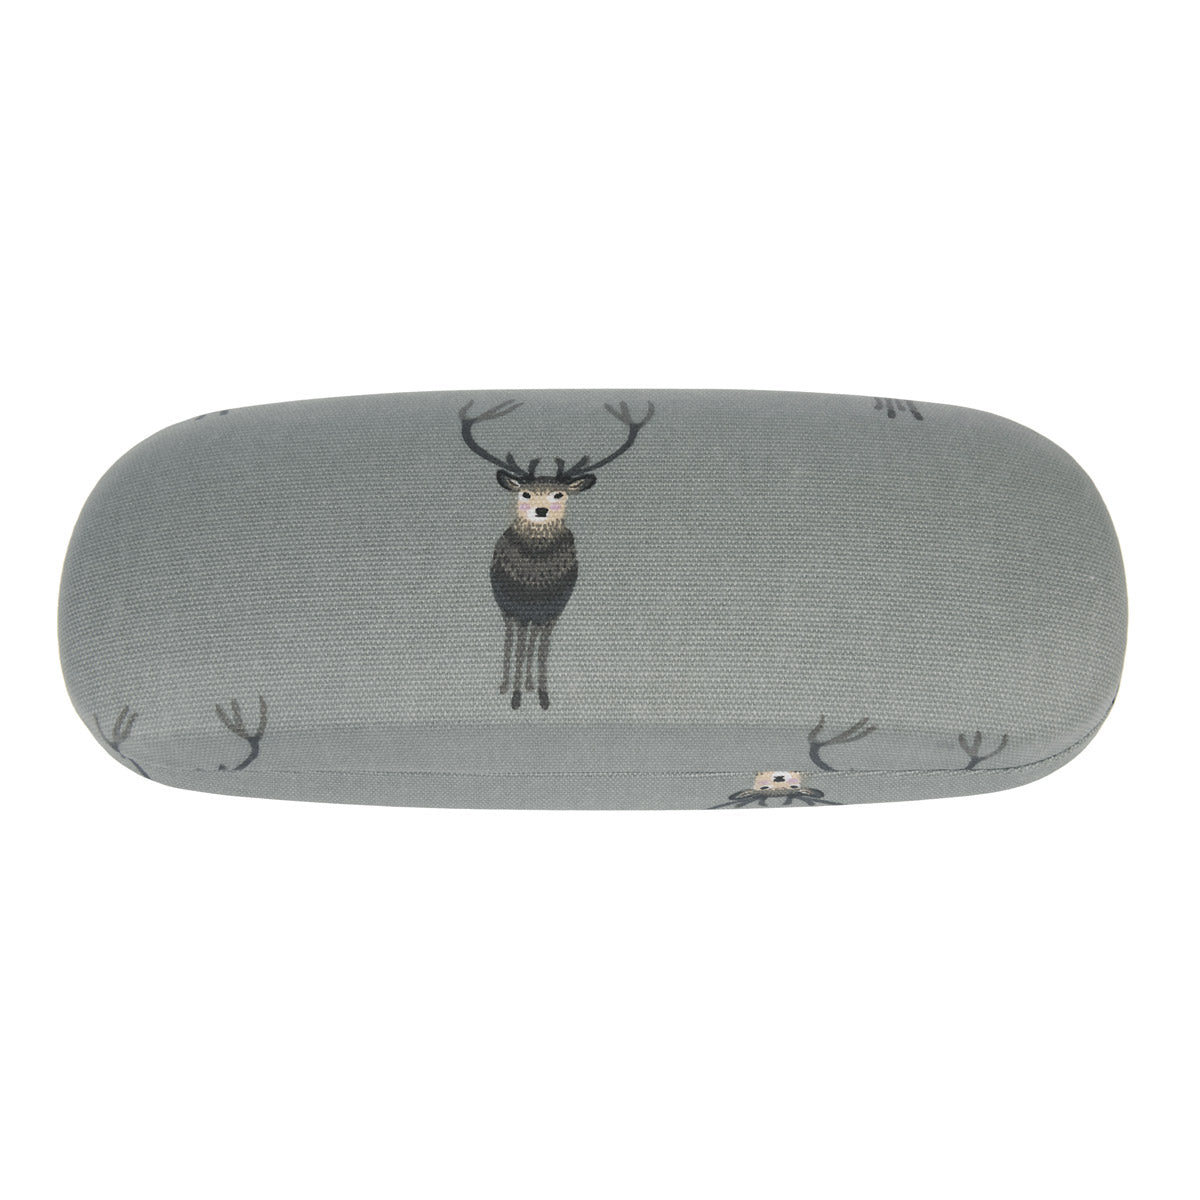 Highland Stag Glasses Hard Case